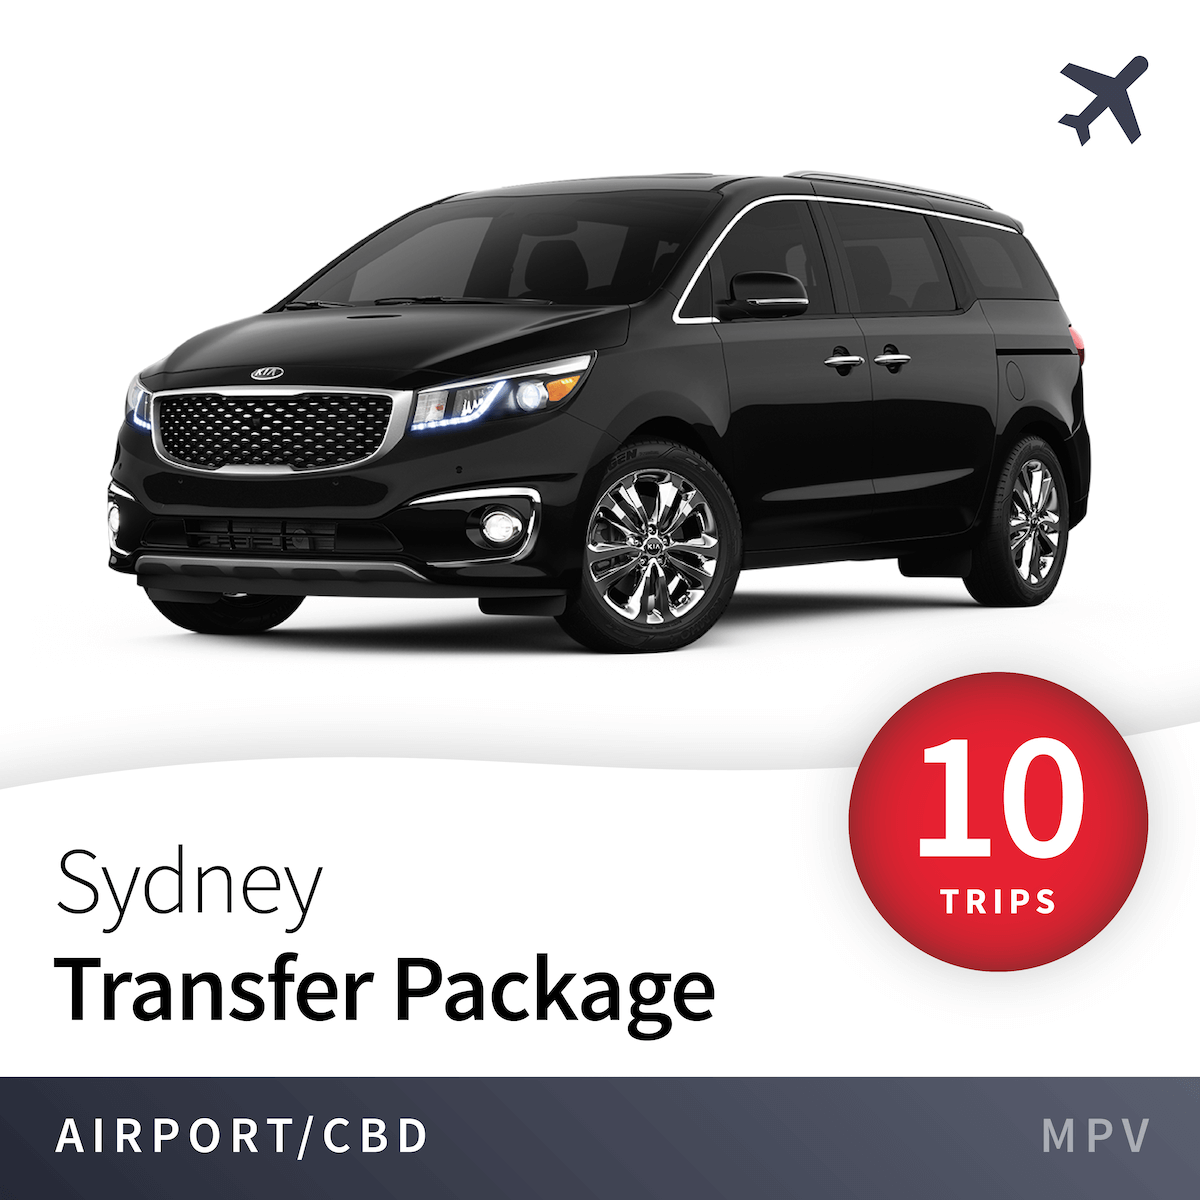 Sydney Airport Transfer Package - MPV (10 Trips) 9